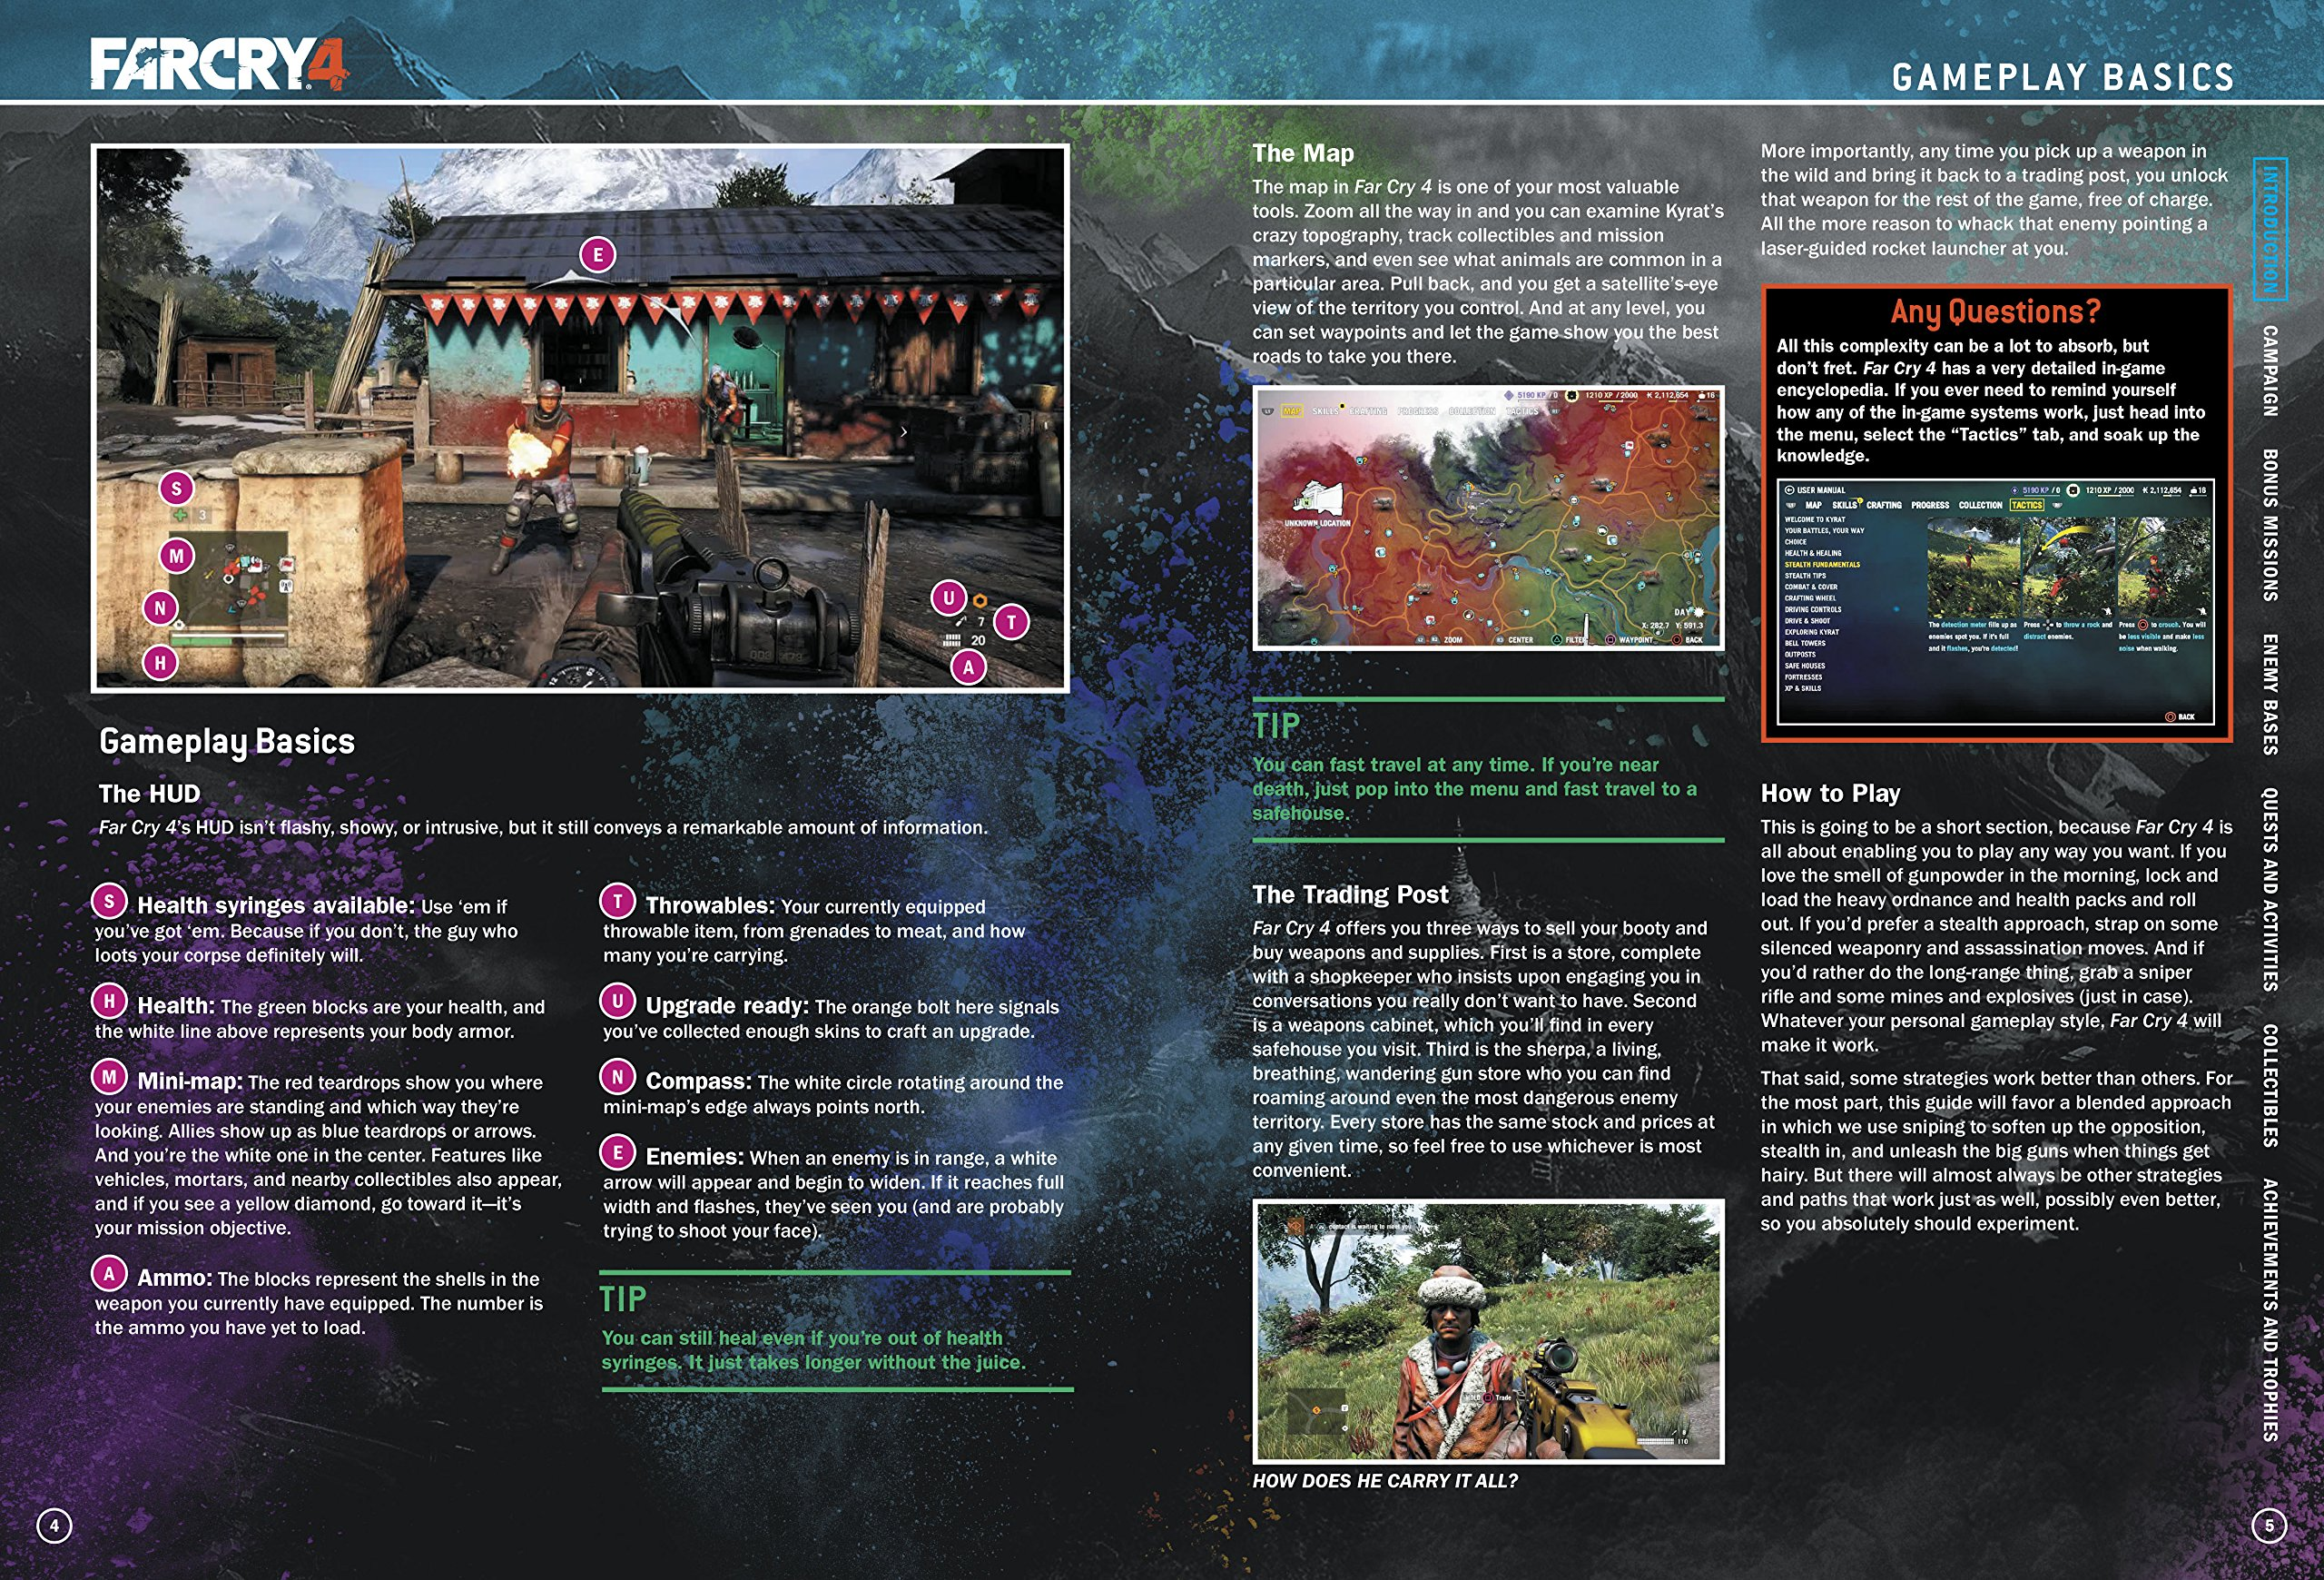 Free Preview Images From The Far Cry 4 Prima Official